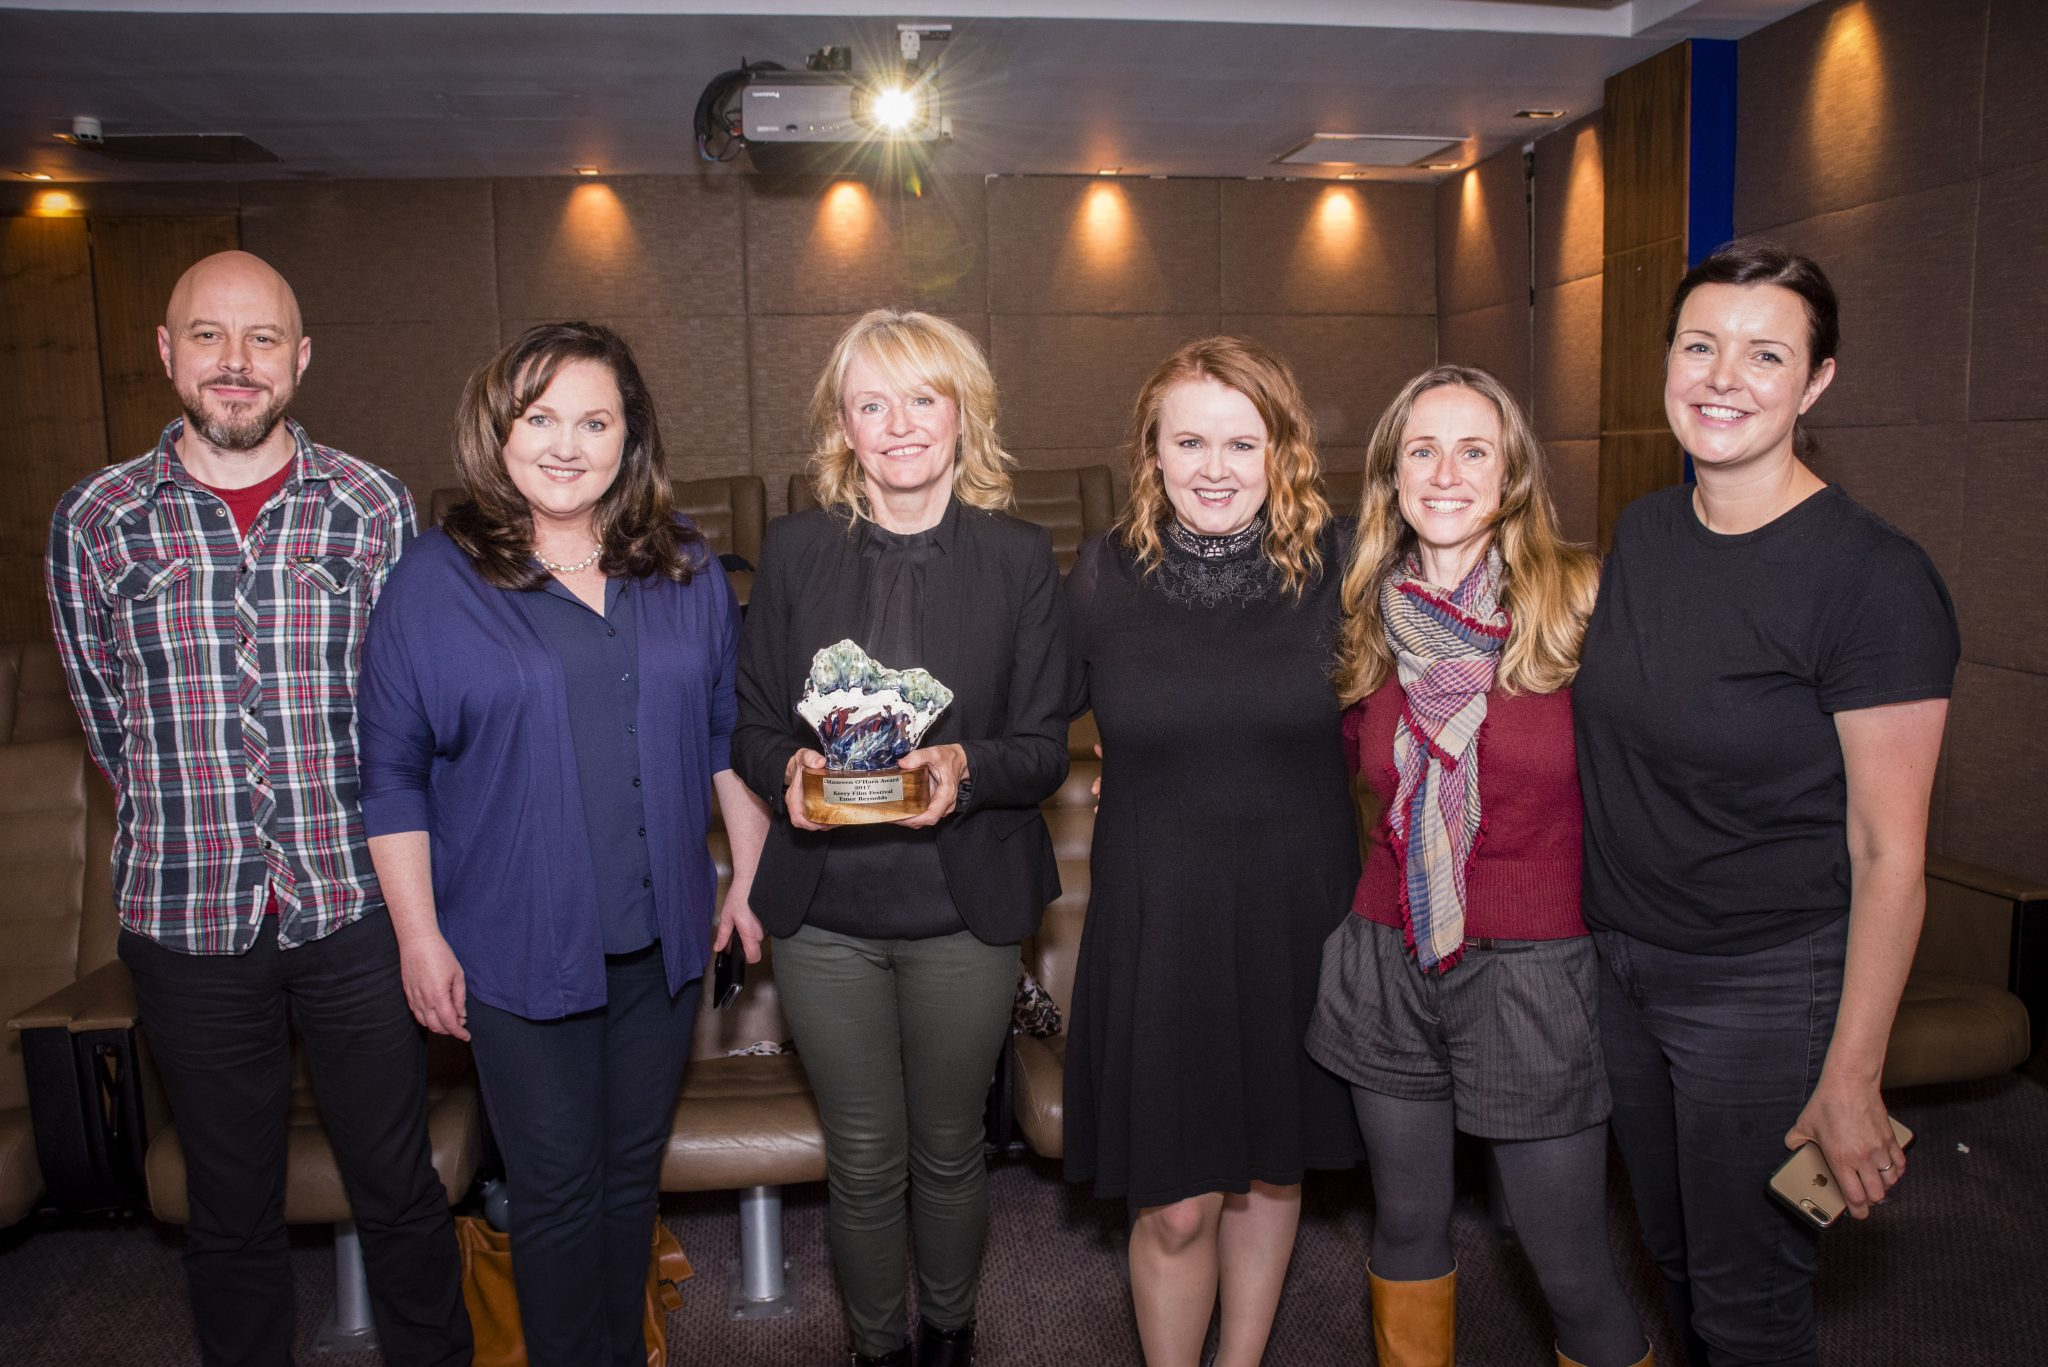 Kerry Film Festival Artistic Director Maeve McGrath presents the Maureen O'Hara award to 2017 recipient Director and Editor Emer Reynolds at a ceremony in Dublin today.  R-L are Producer Claire Stronge, Ailbhe Keagan (KFFest Board Member), Maeve McGrath, Emer Reynolds, Áine Moriarity (KFFest Board Member and CEO of IFTA), Declan McSteen (Programmer KFF).